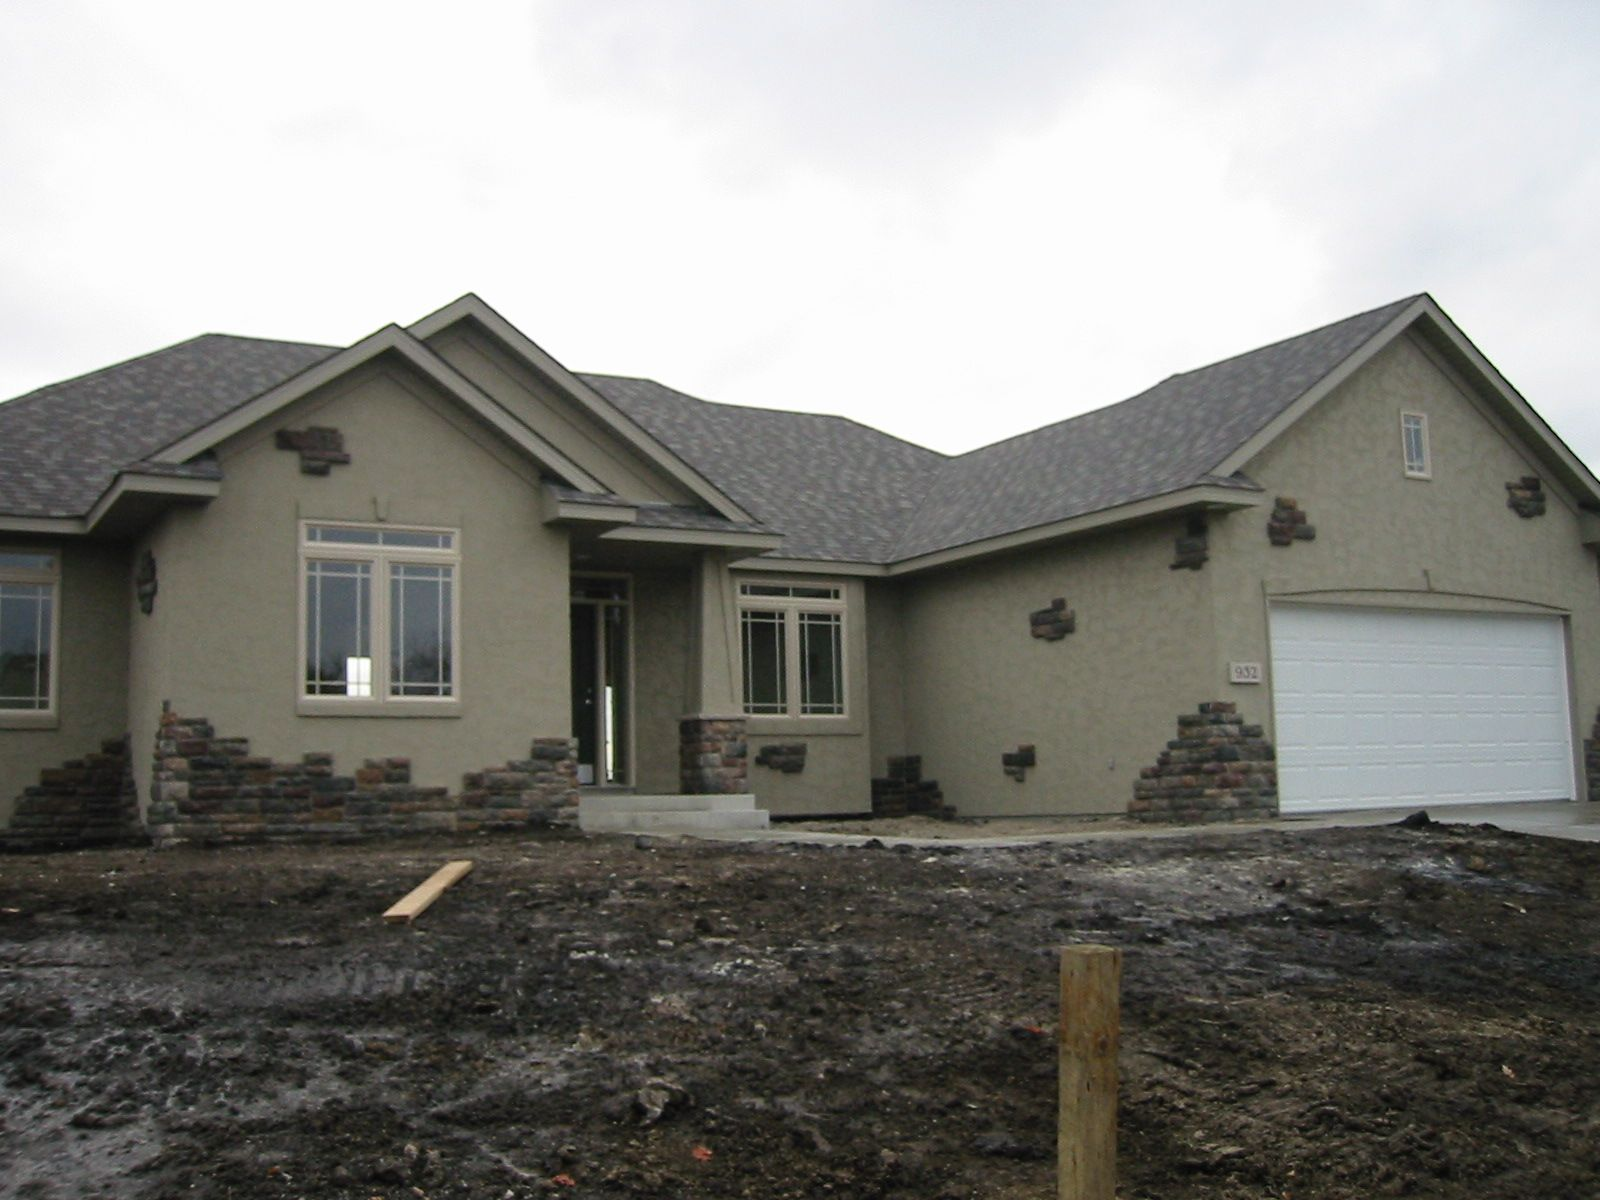 Stucco Color And Texture Selections Stucco Colors Stucco Homes House Exterior